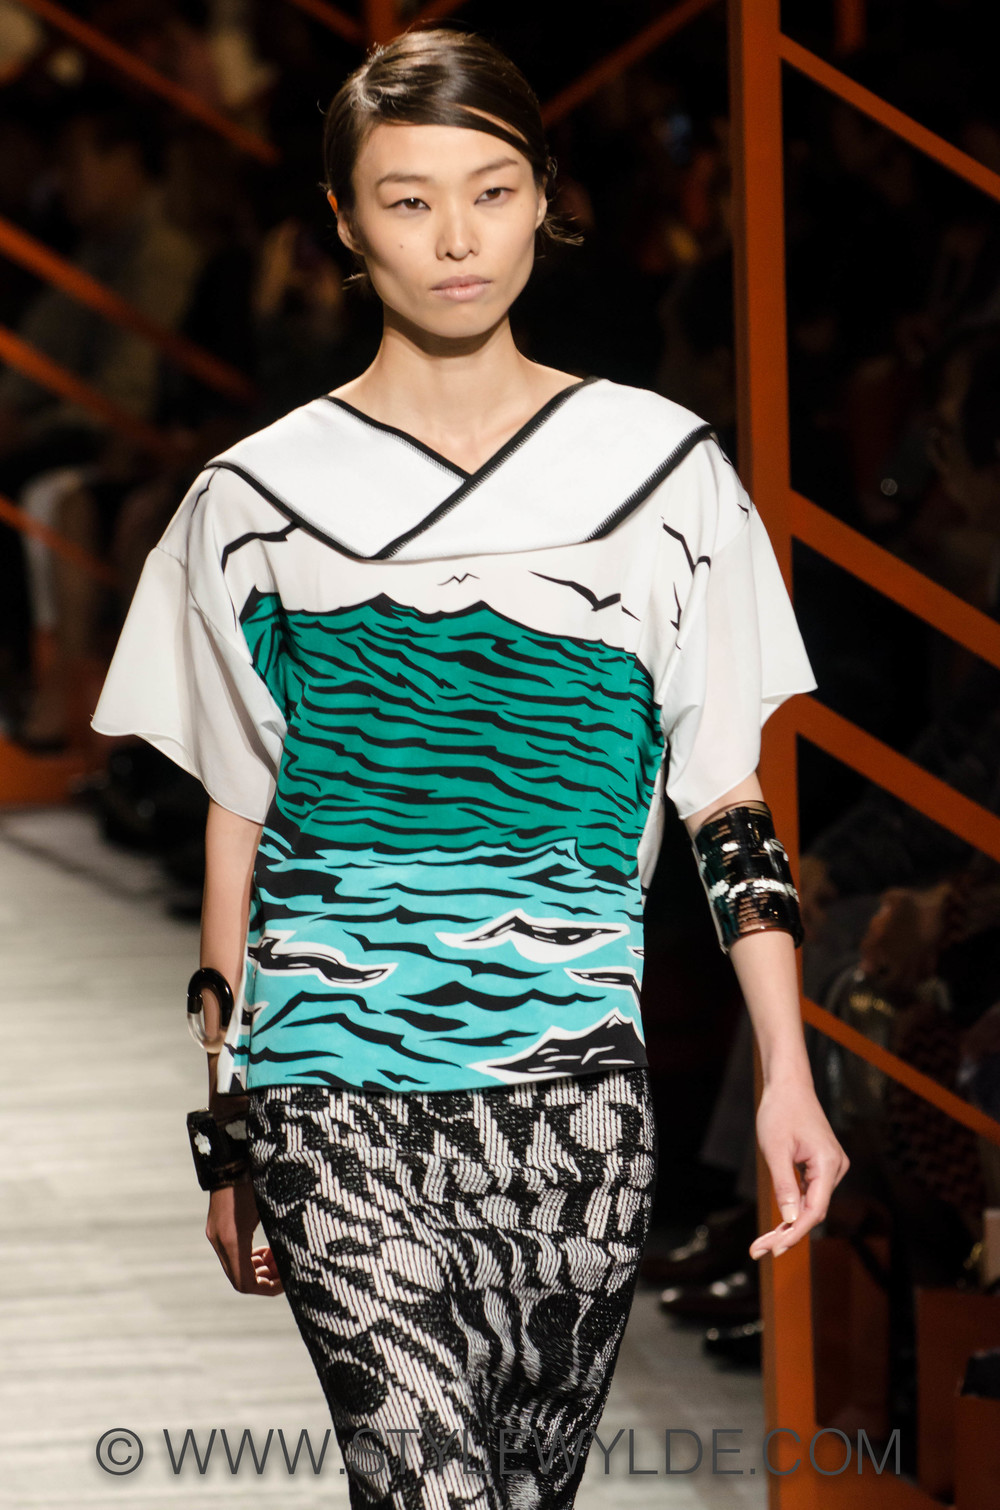 STYLEWYLDE_Missoni_SS2014 (1 of 1)-7.jpg